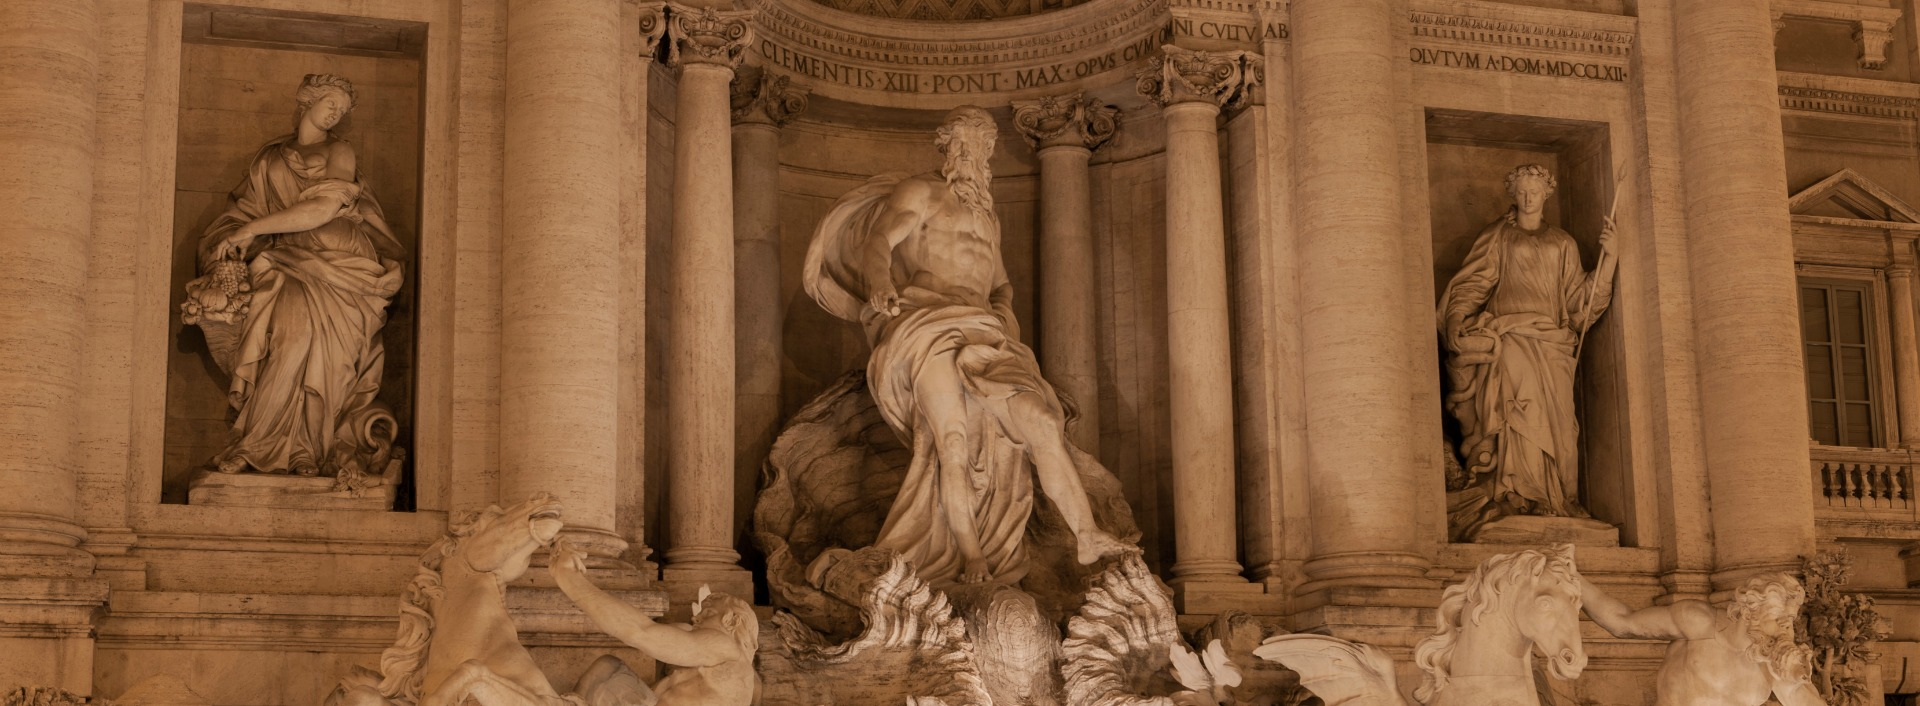 There are many common Latin words in English though you won't hear Latin spoken at the Trevi Fountain anymore!